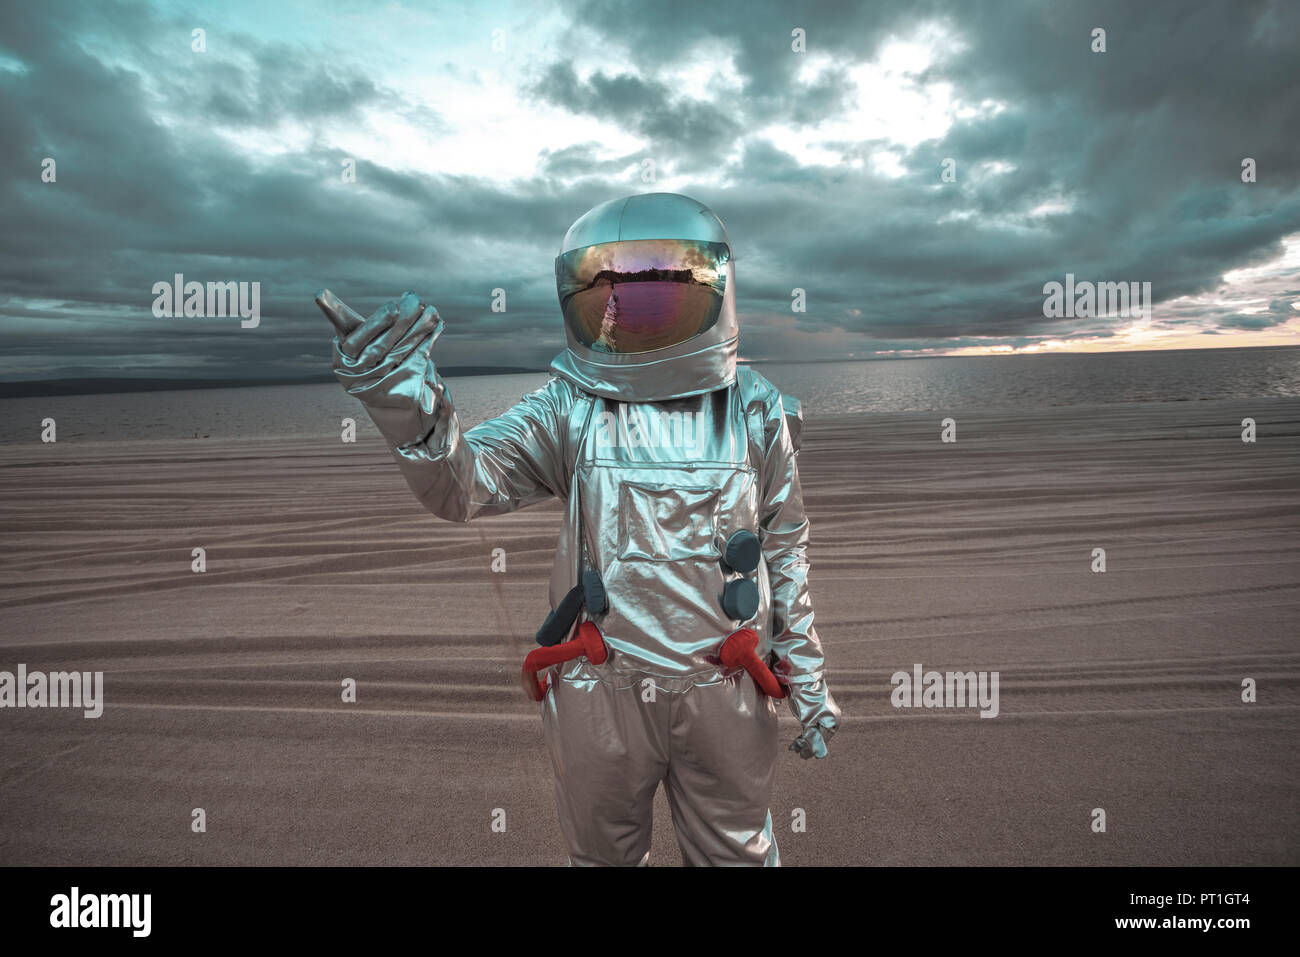 Spaceman pointing at something on a nameless planet - Stock Image